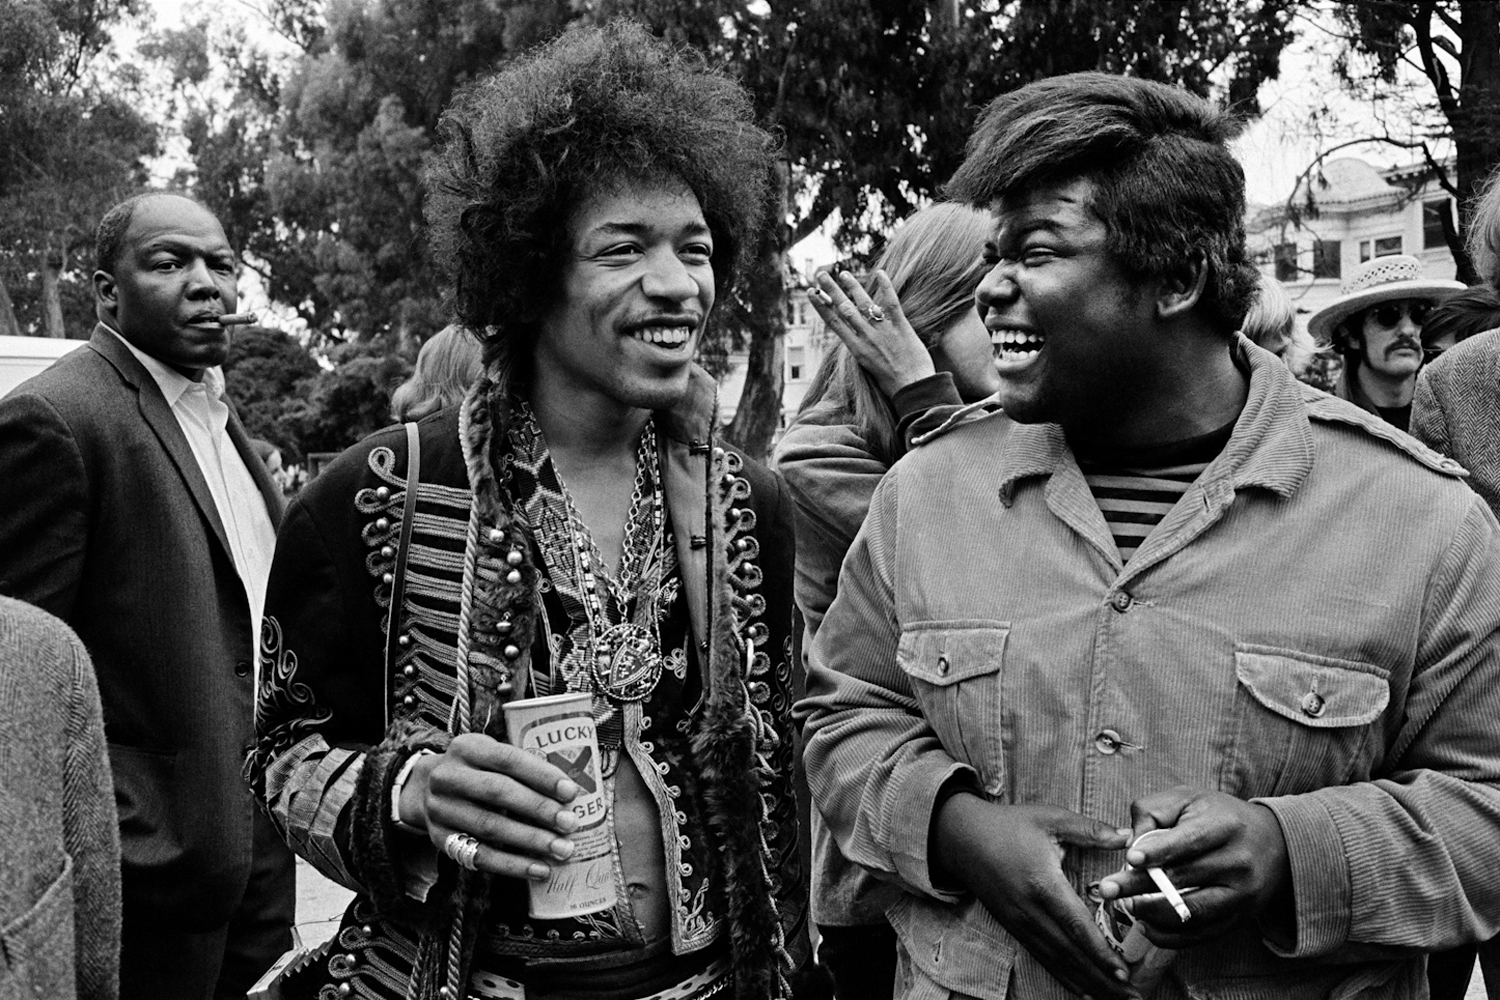 Jimi Hendrix and Buddy Miles at the Panhandle Free Concert, San Francisco, 1967